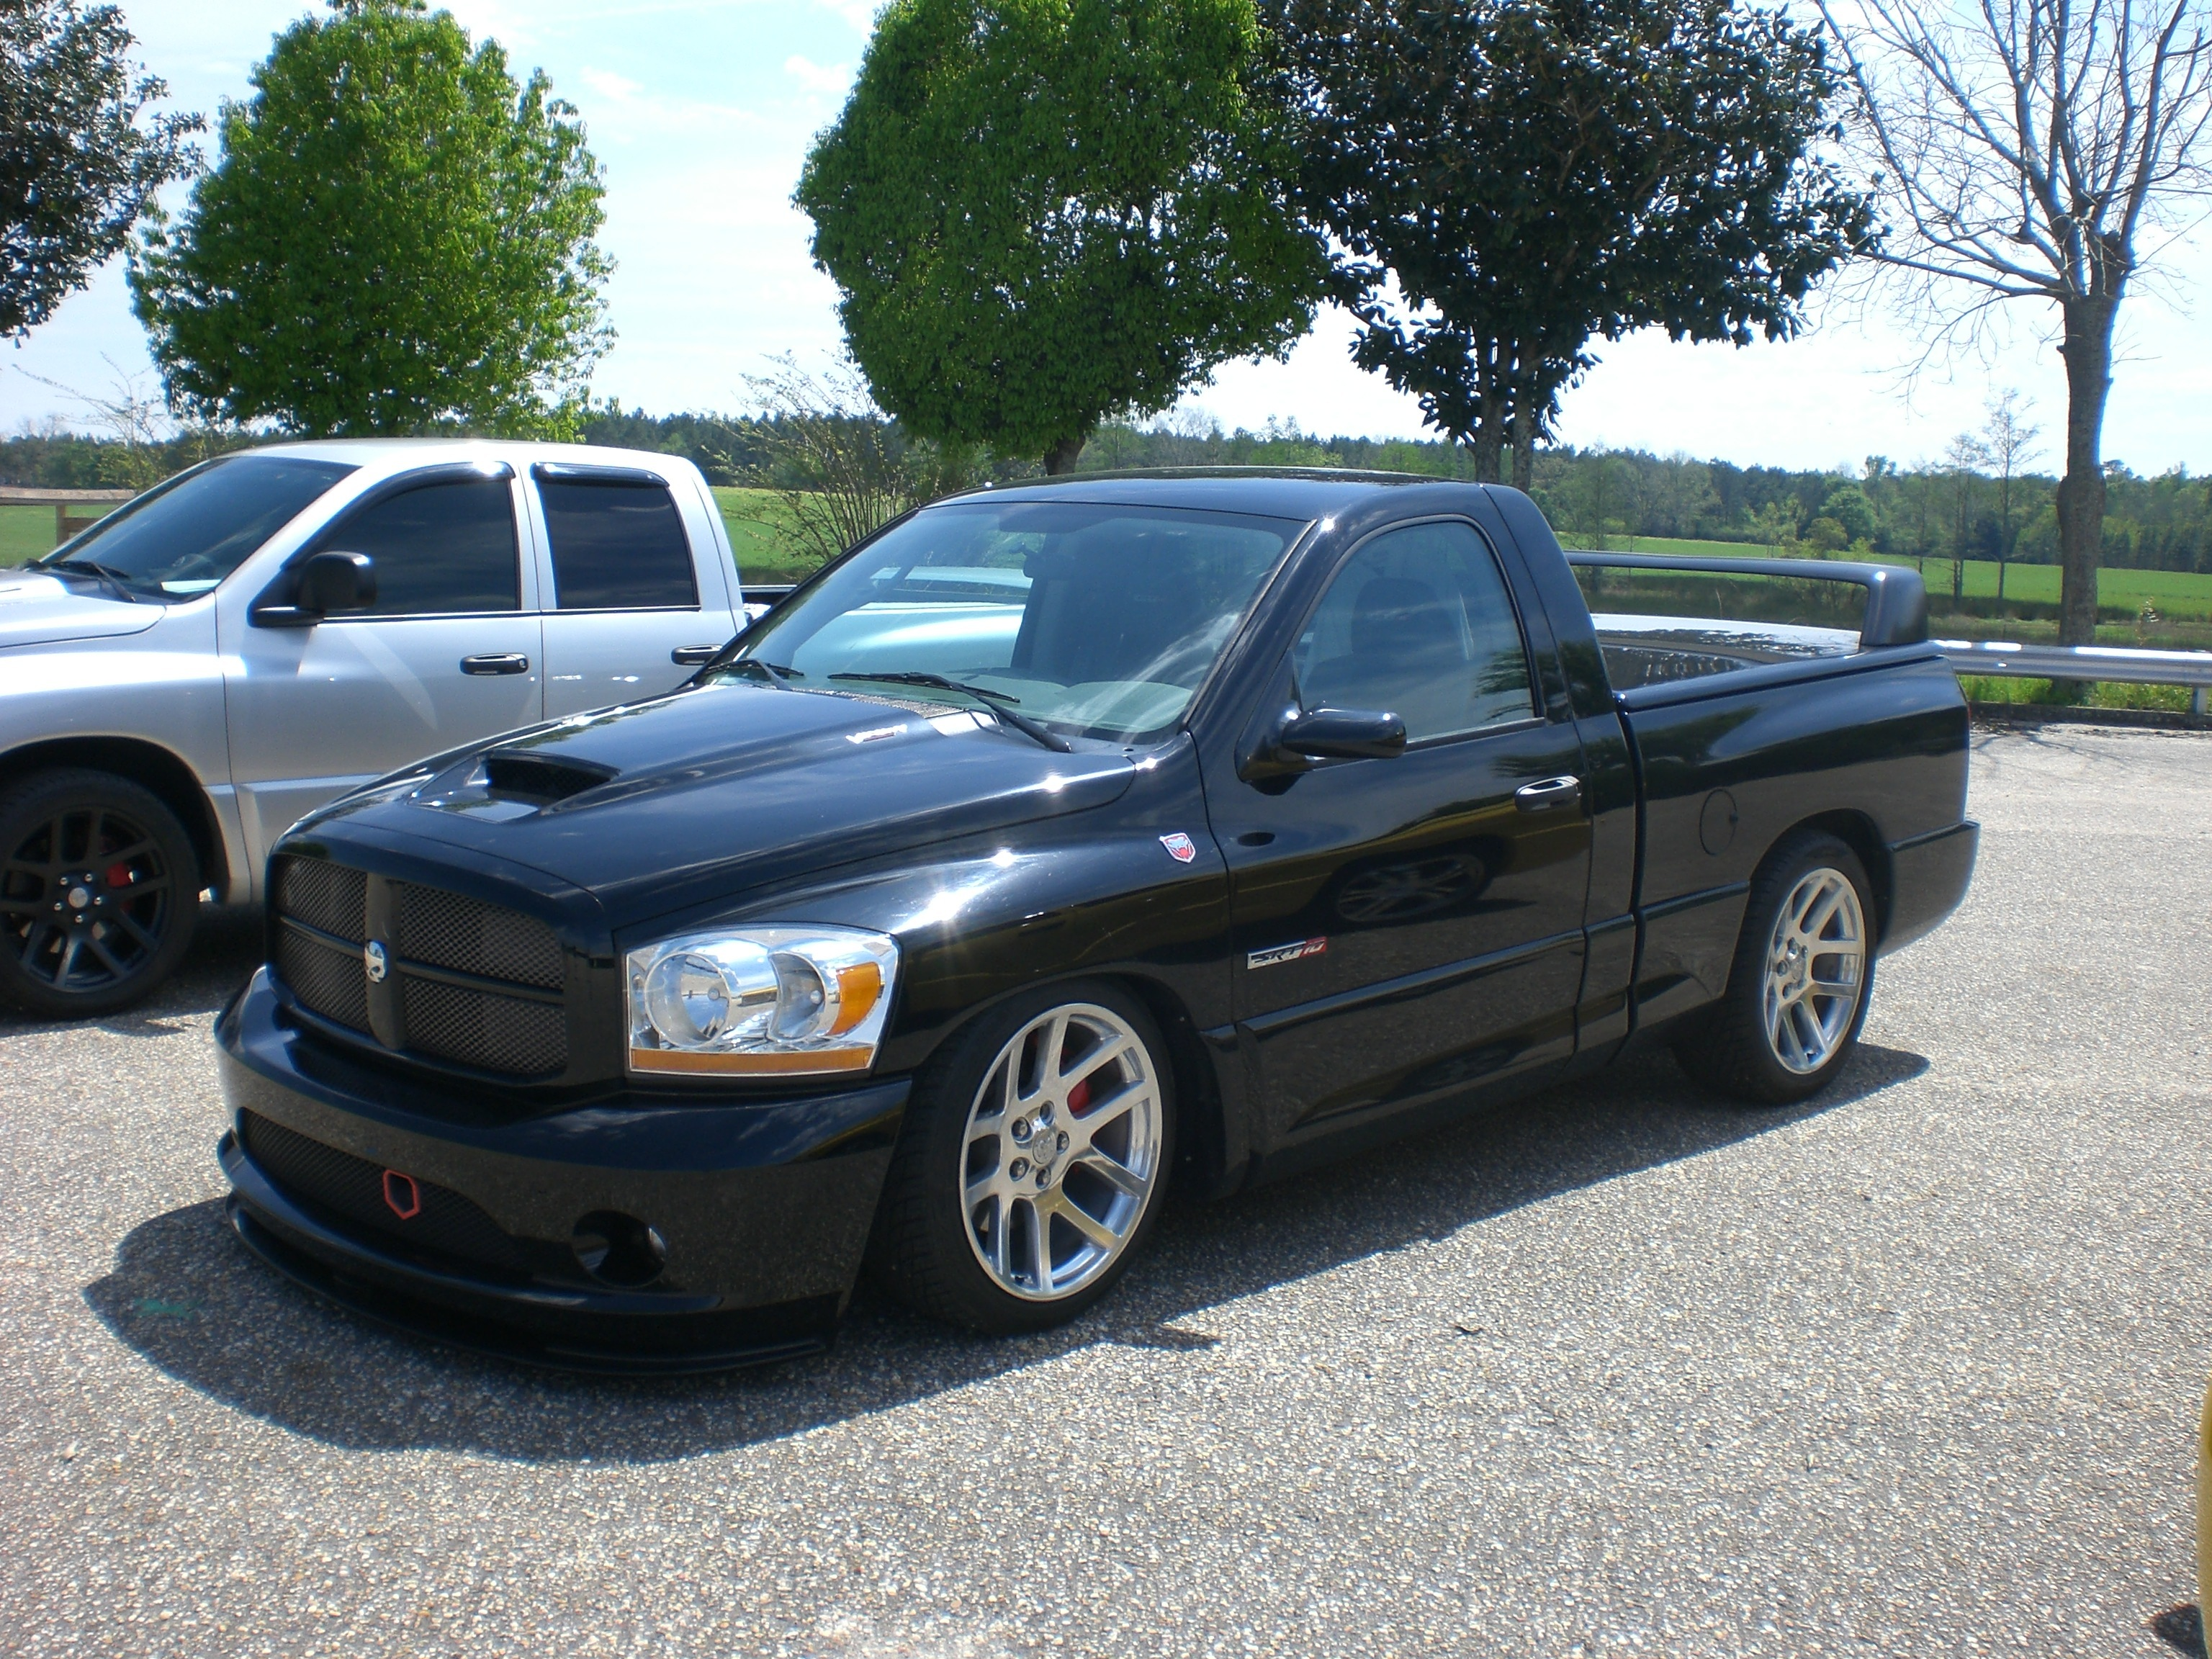 psycho mythic 2006 dodge ram srt 10 specs photos modification info at cardomain. Black Bedroom Furniture Sets. Home Design Ideas